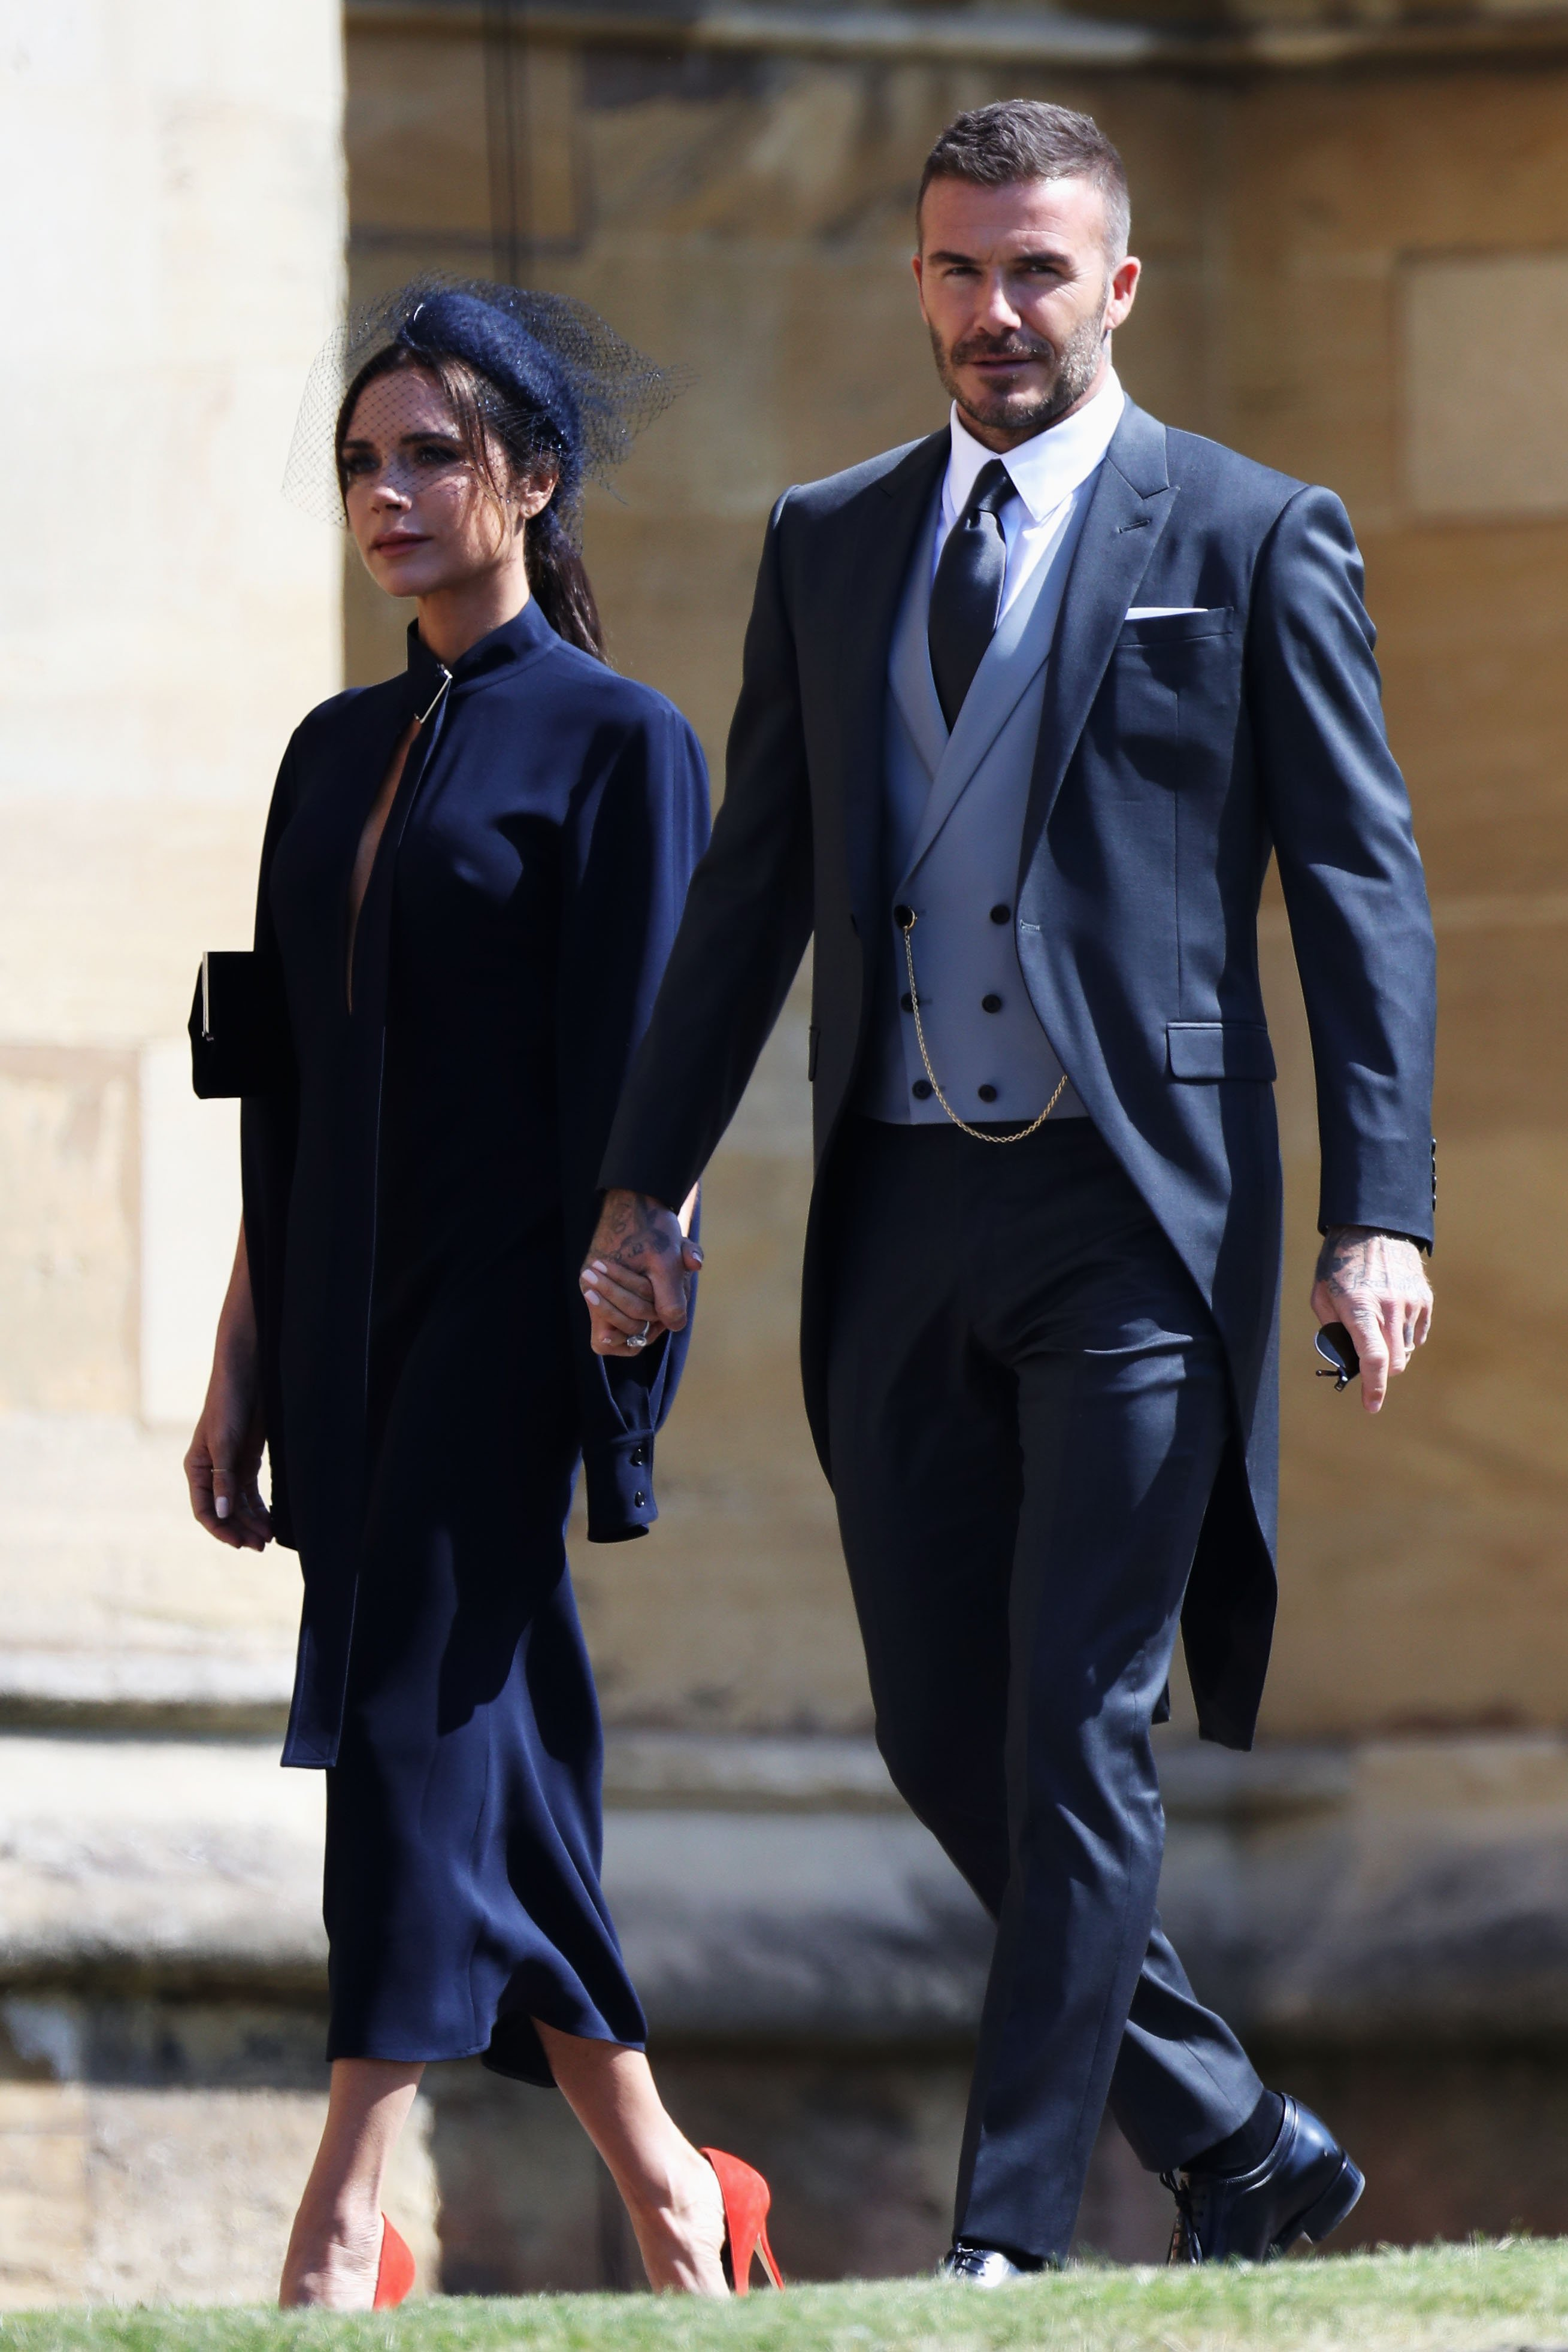 Victoria Beckham and David Beckham arrive at Prince Harry and Meghan Markle's wedding at St George's Chapel, Windsor Castle on May 19, 2018, in Windsor, England. | Source: Getty Images.